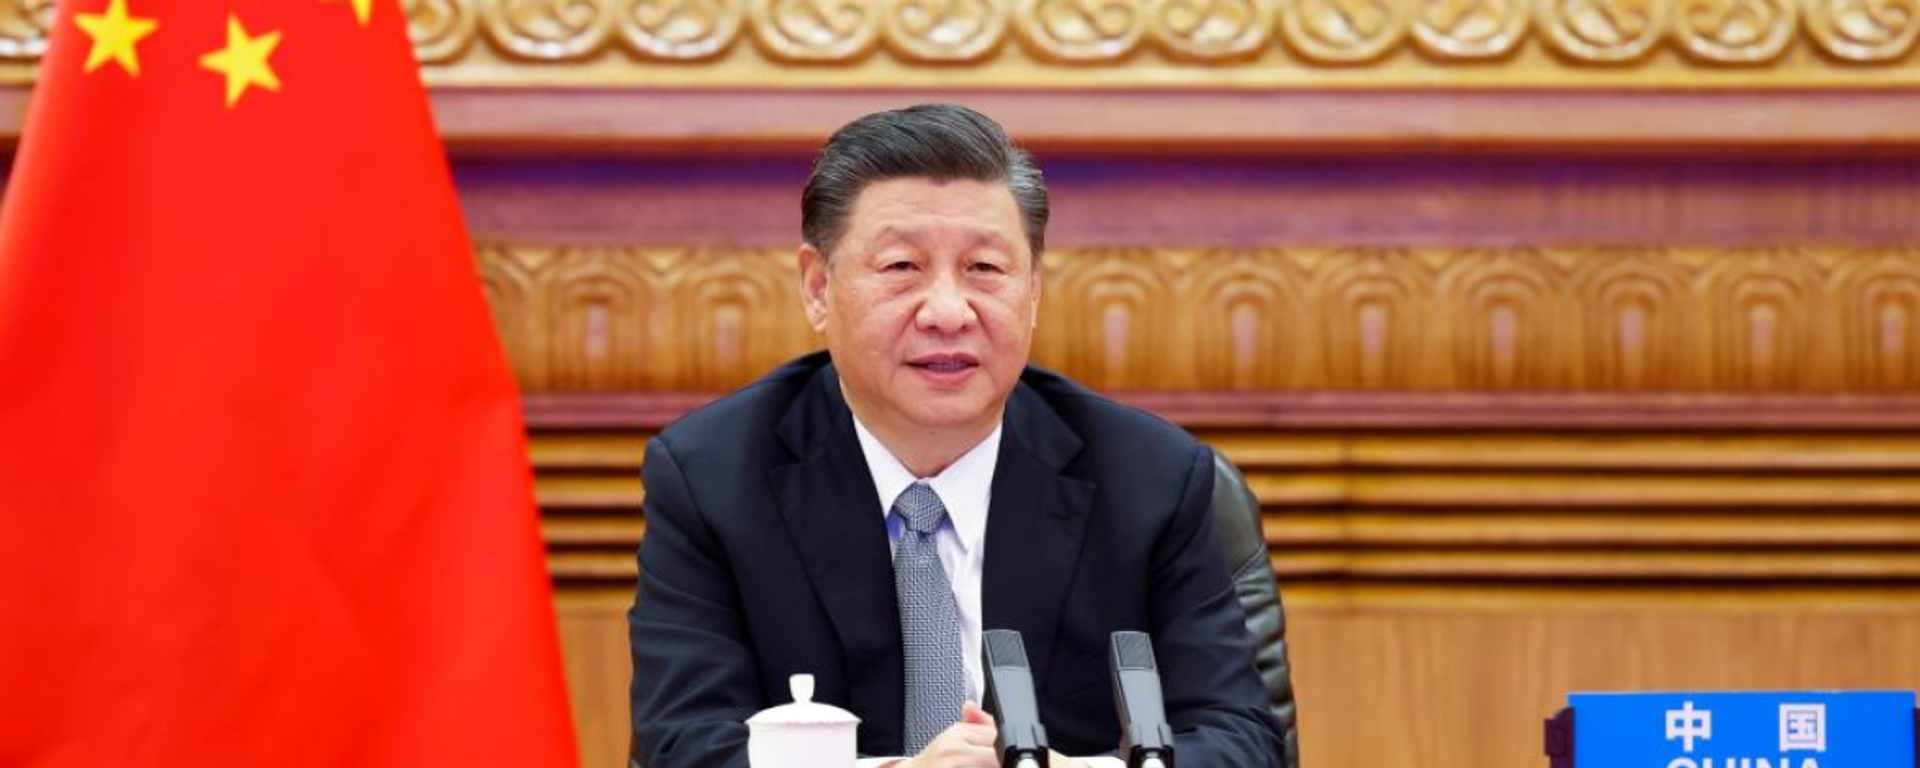 At the invitation of U.S. President Joe Biden, Chinese President Xi Jinping attends the Leaders Summit on Climate via video link and delivers an important speech titled For Man and Nature: Building a Community of Life Together in Beijing, capital of China, April 22, 2021. - Sputnik International, 1920, 22.09.2021